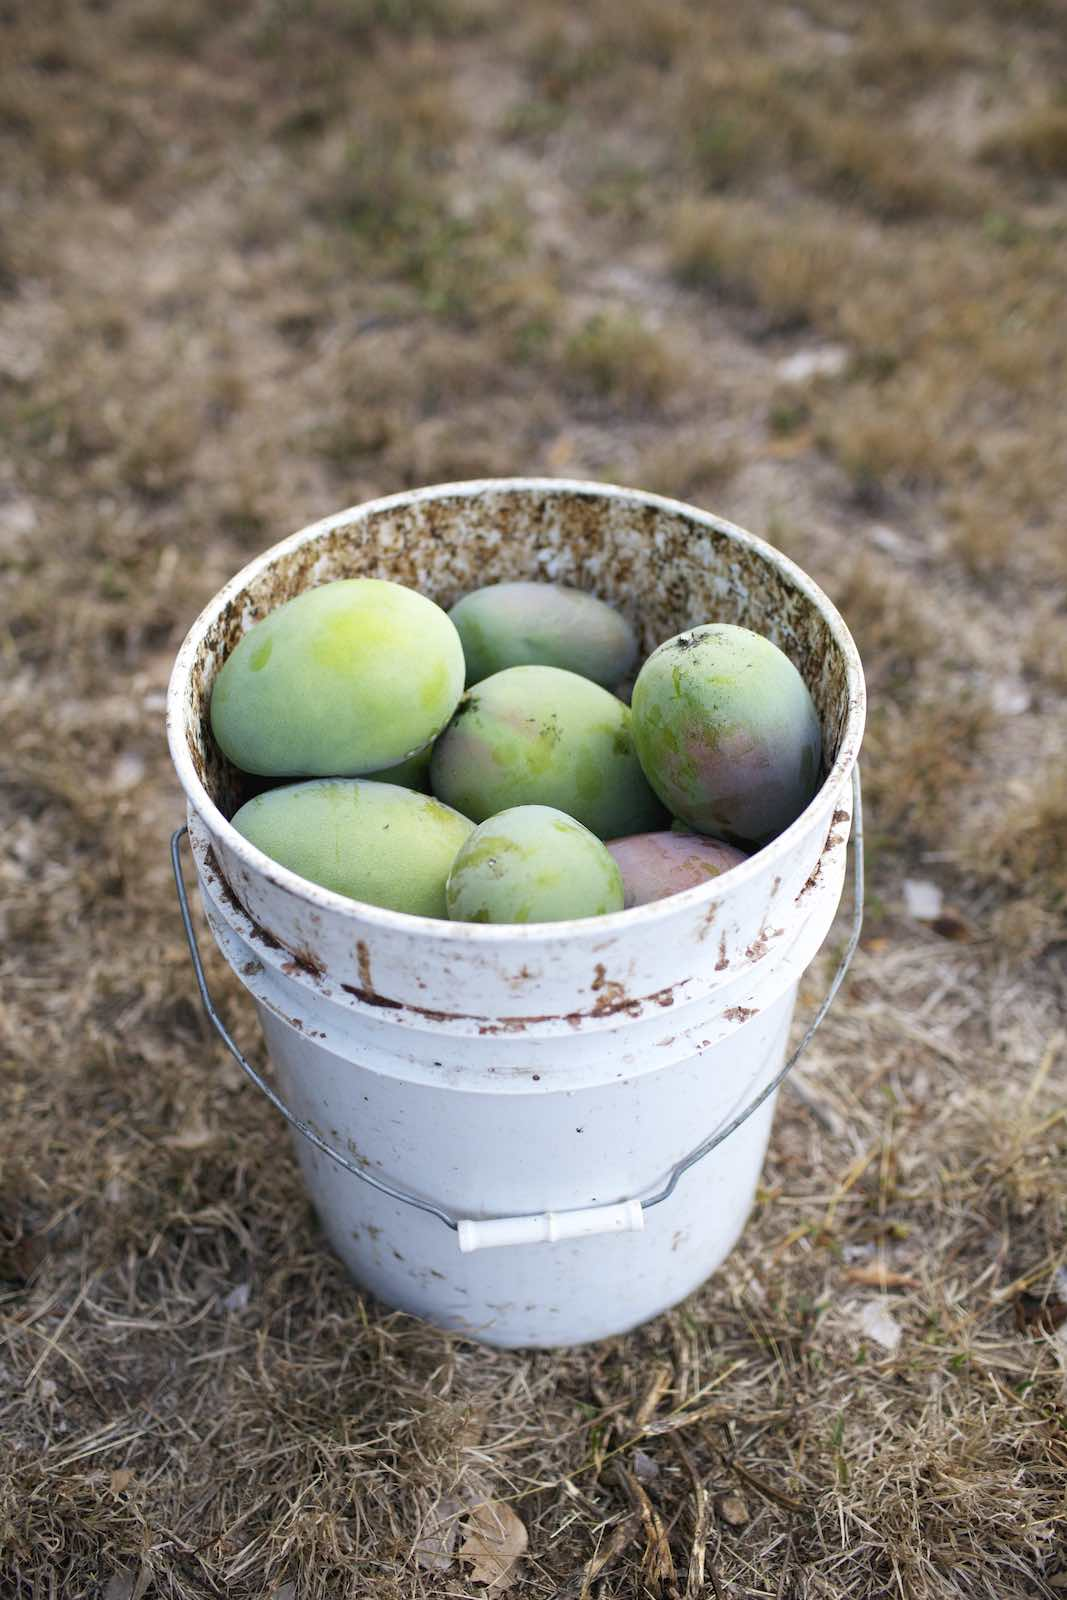 Jody Horton Photography - A white bucket of freshly picked mangos.